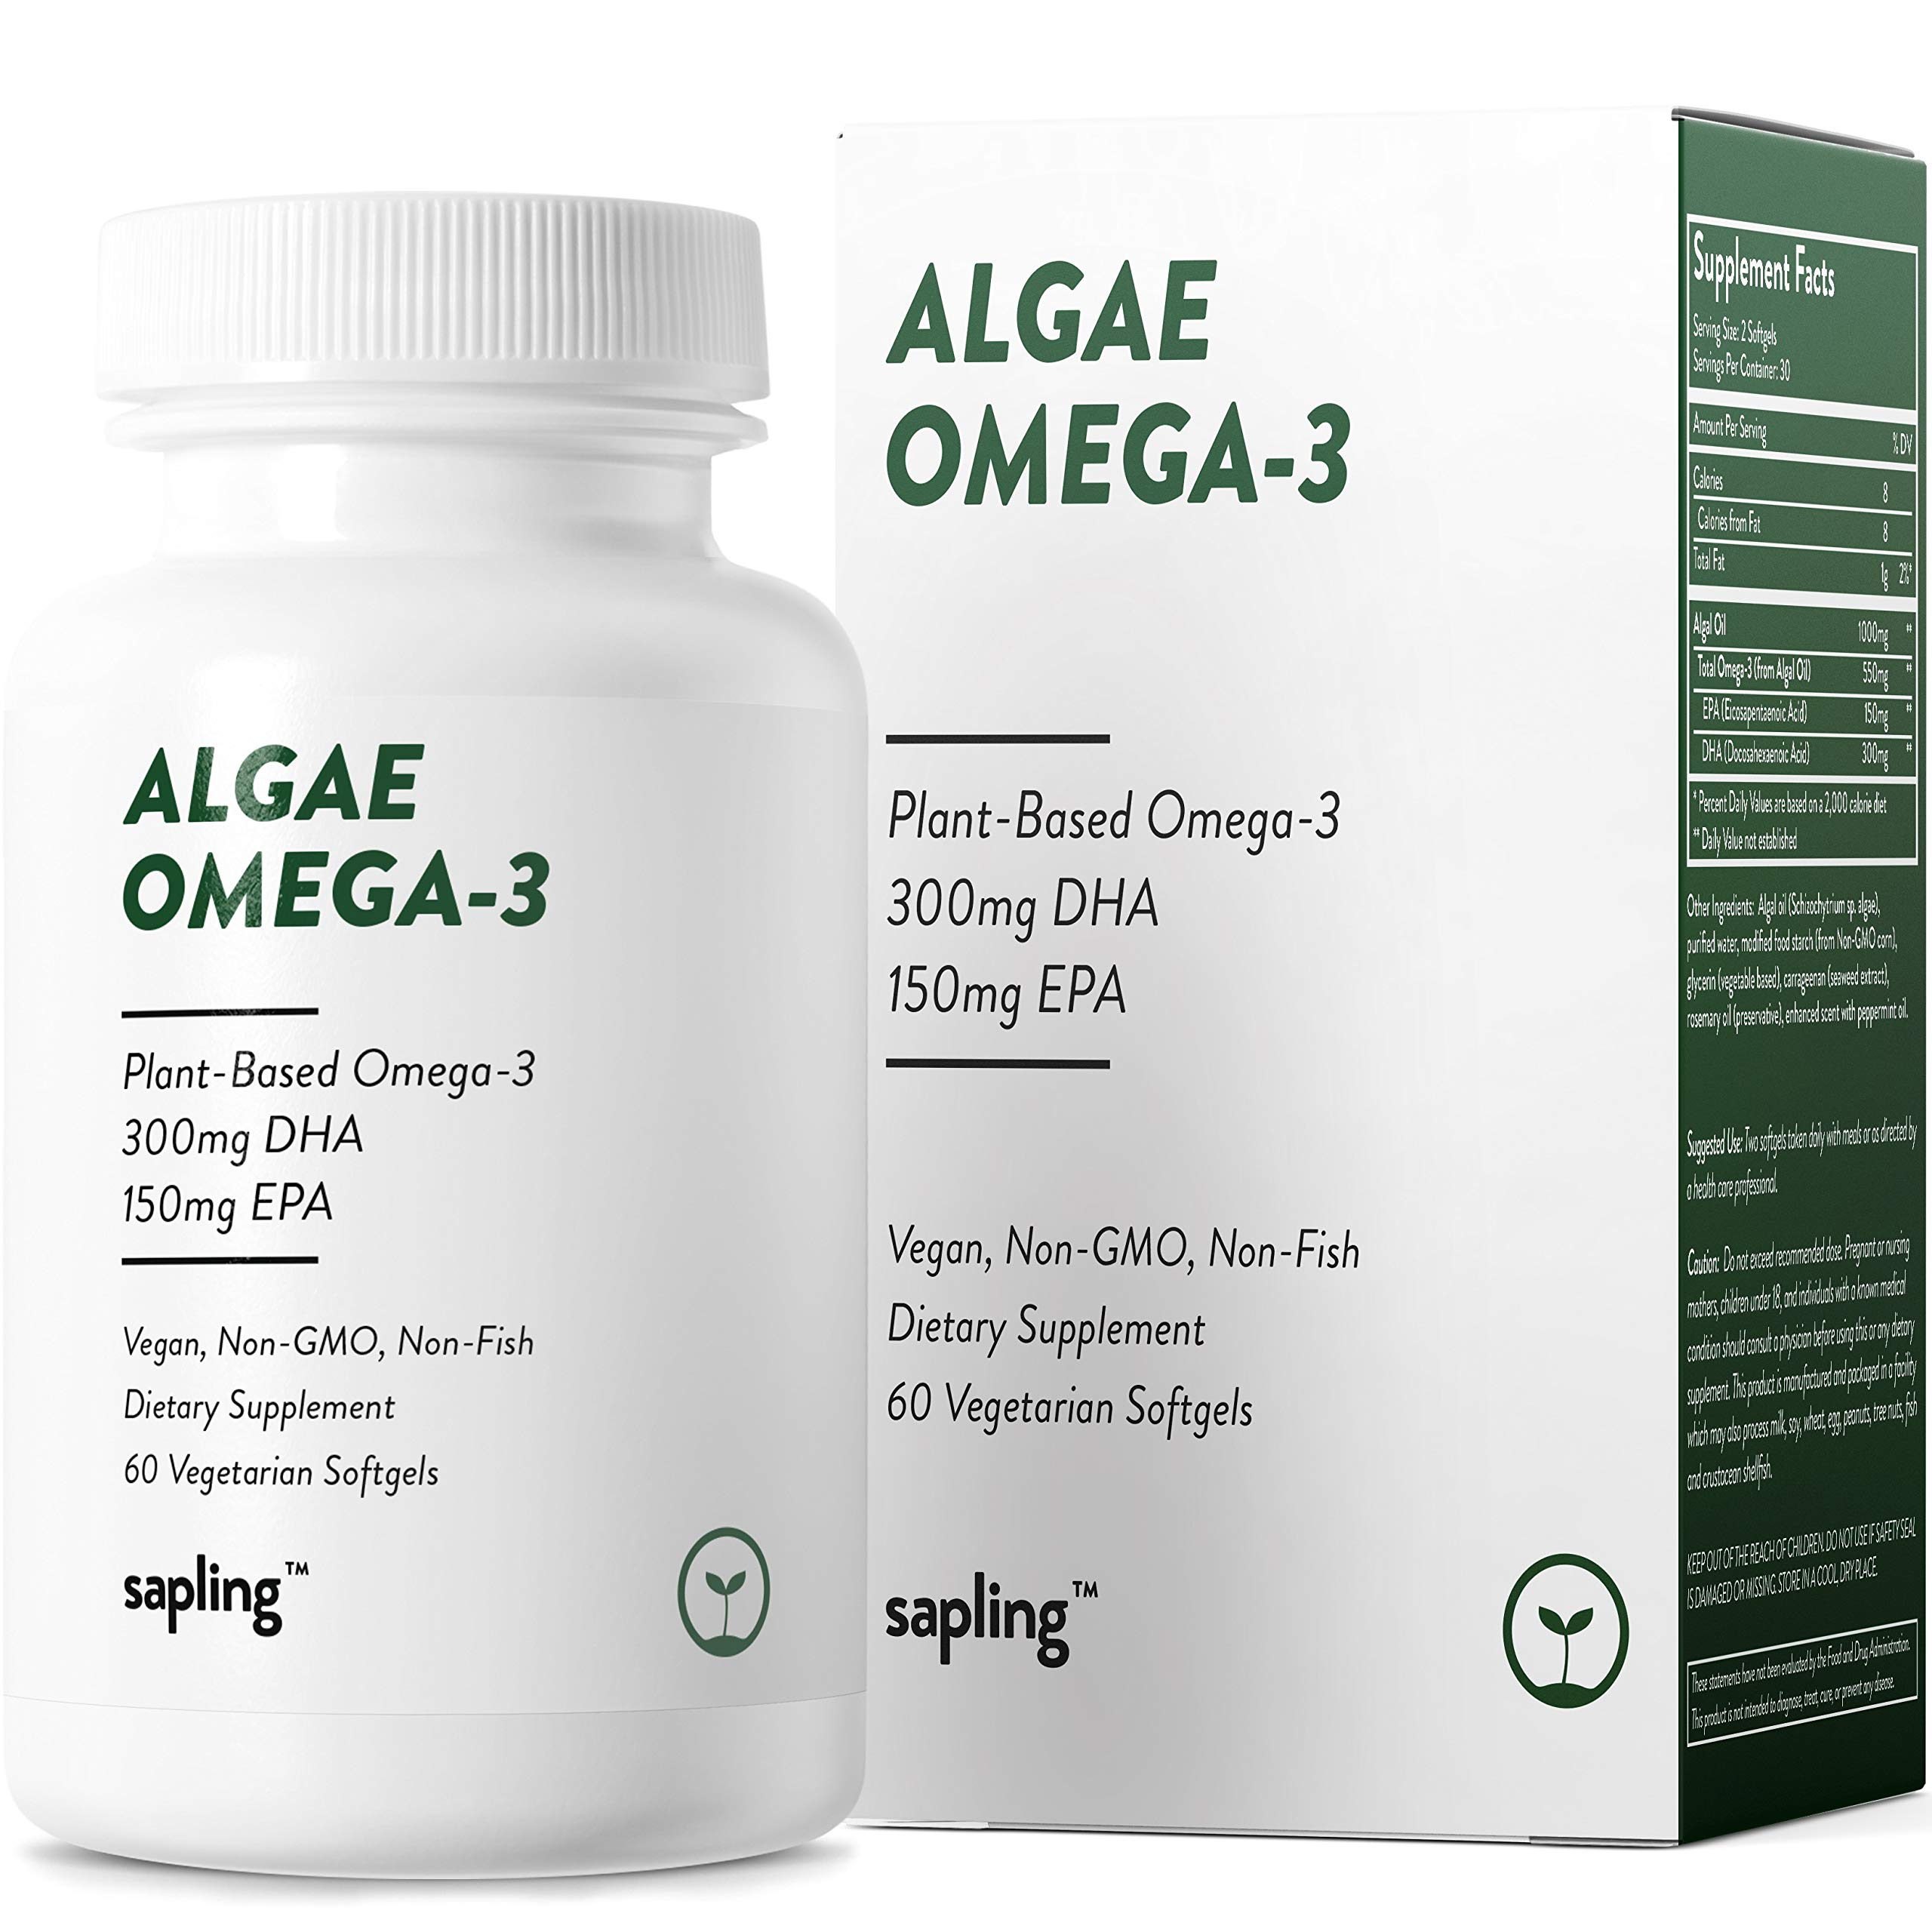 Vegan Omega 3 Supplement - Plant Based DHA & EPA Fatty Acids Alternative to Fish Oil - Supports Heart, Brain, Joint Health - Sustainably Sourced from Algae. Fish Oil Free for Men & Women - 60 Softgels by sapling